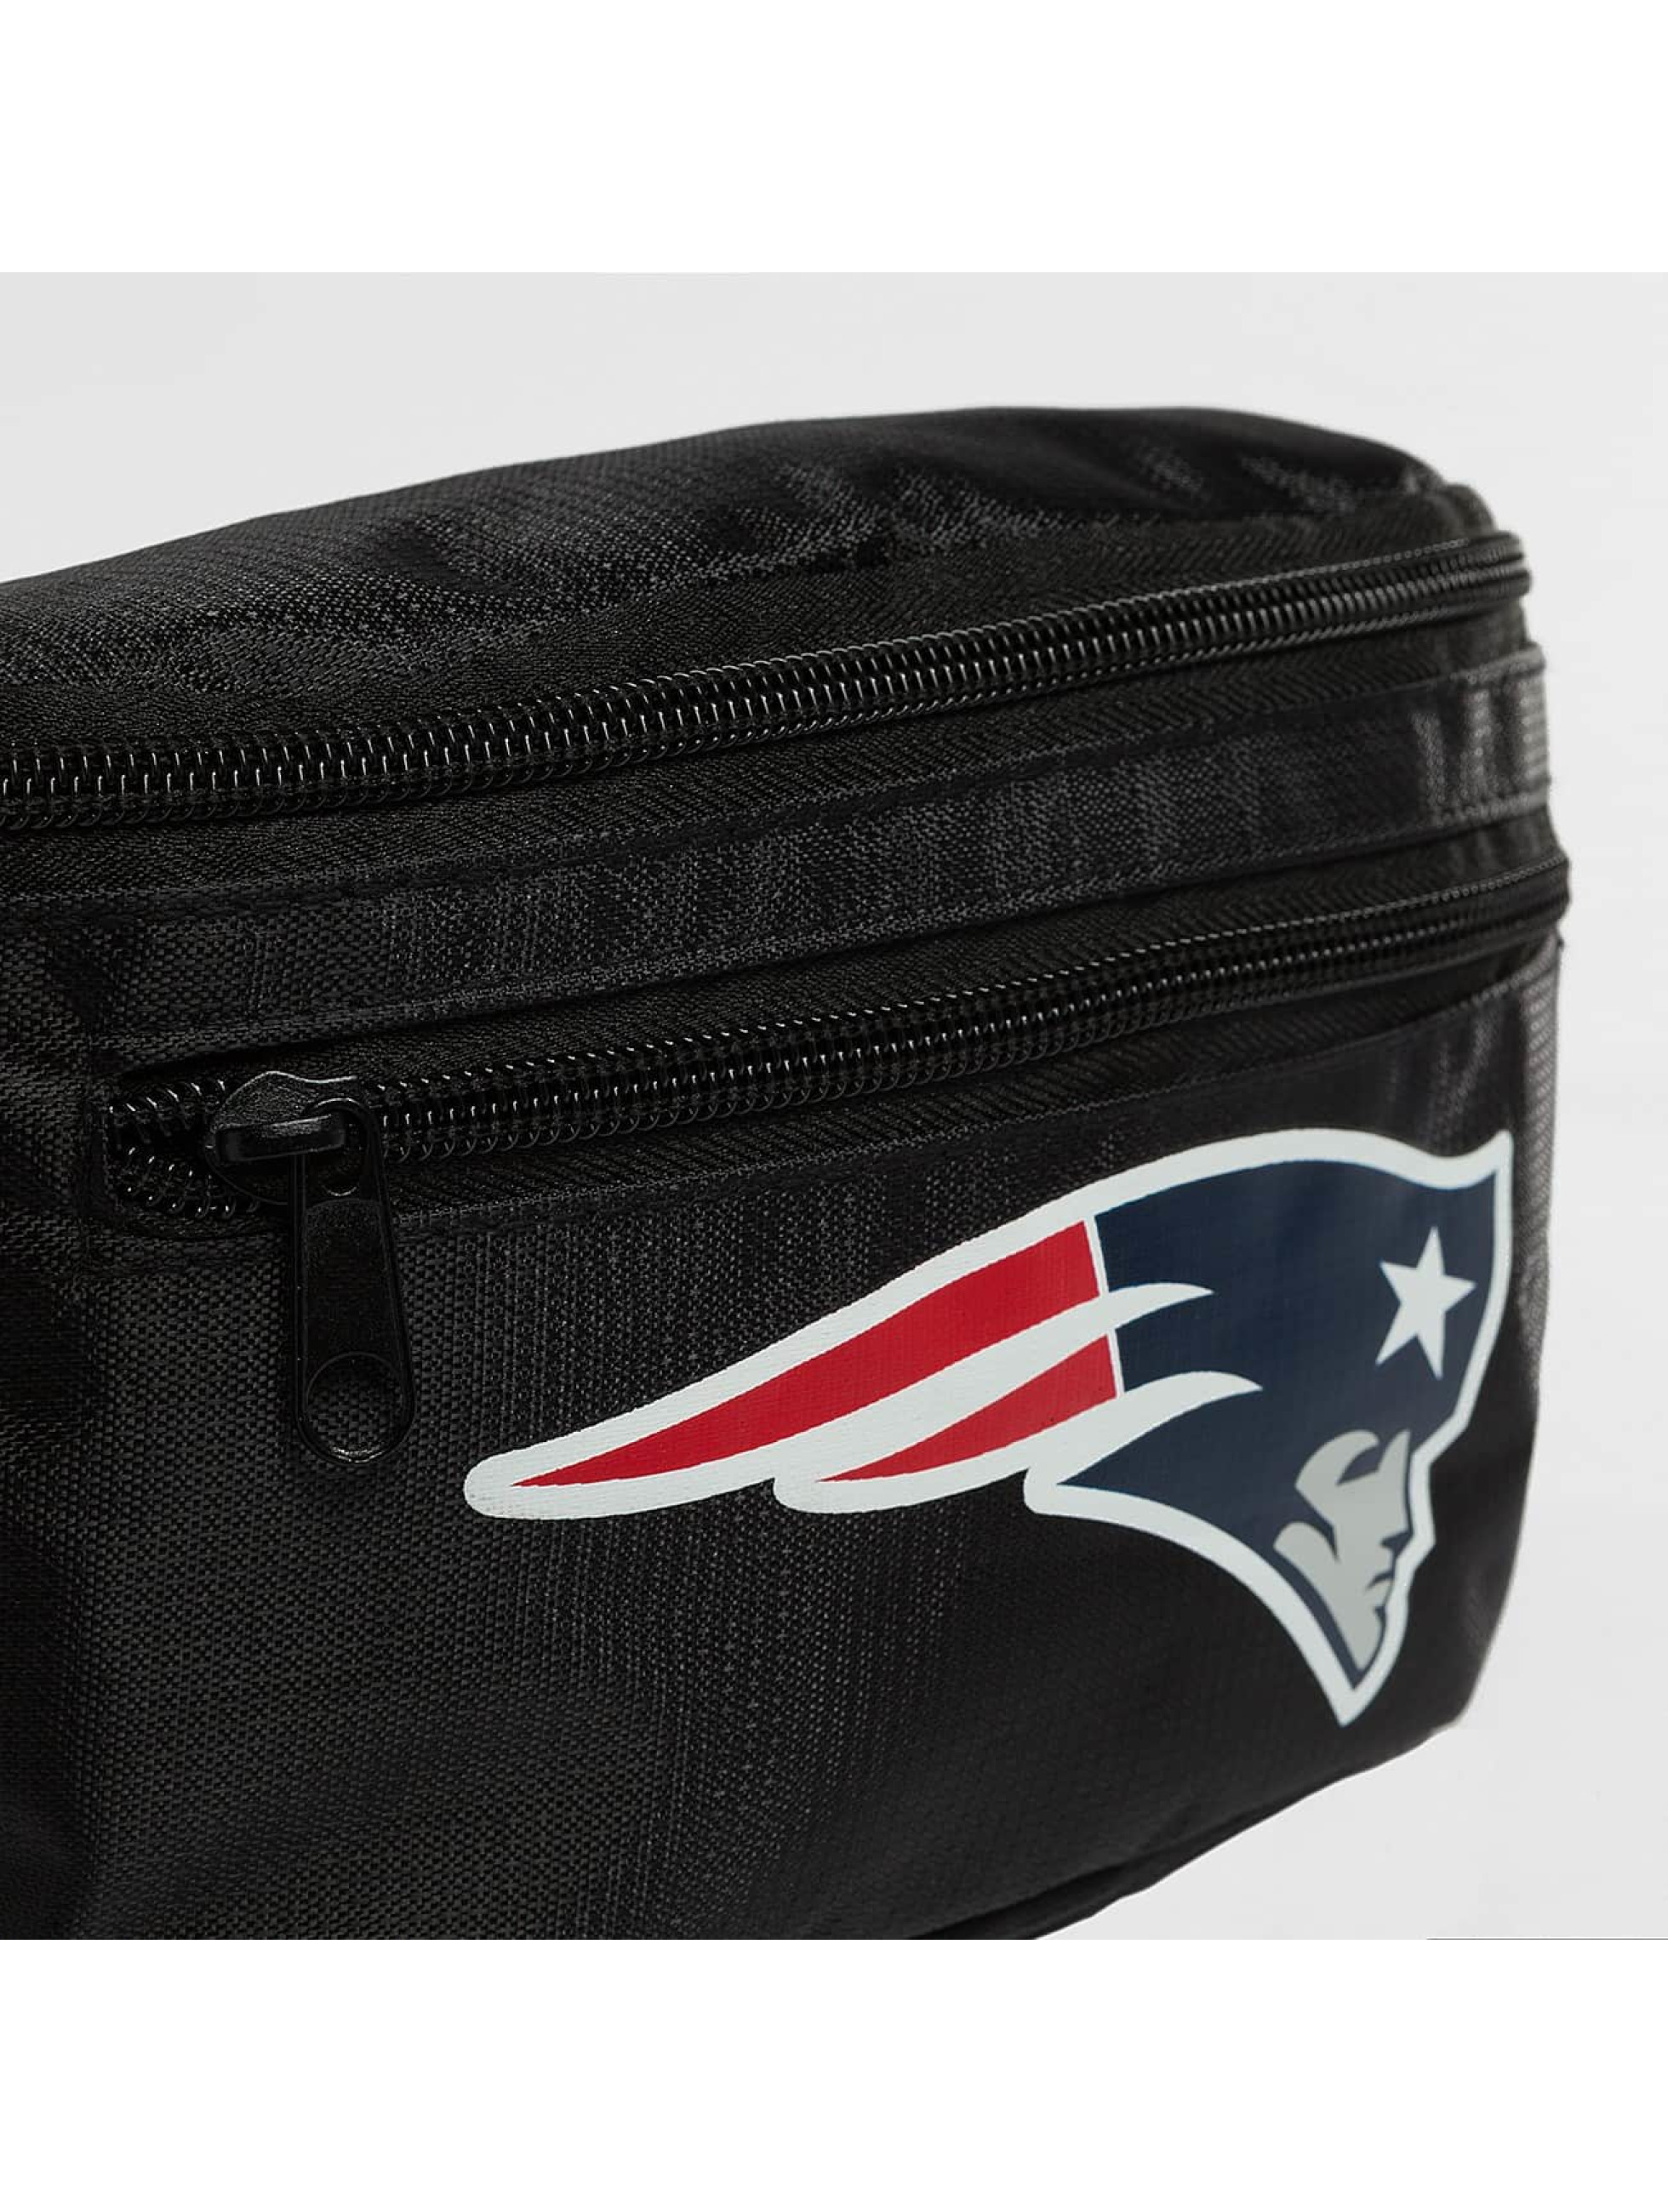 Forever Collectibles Bag NFL New England Patriots black